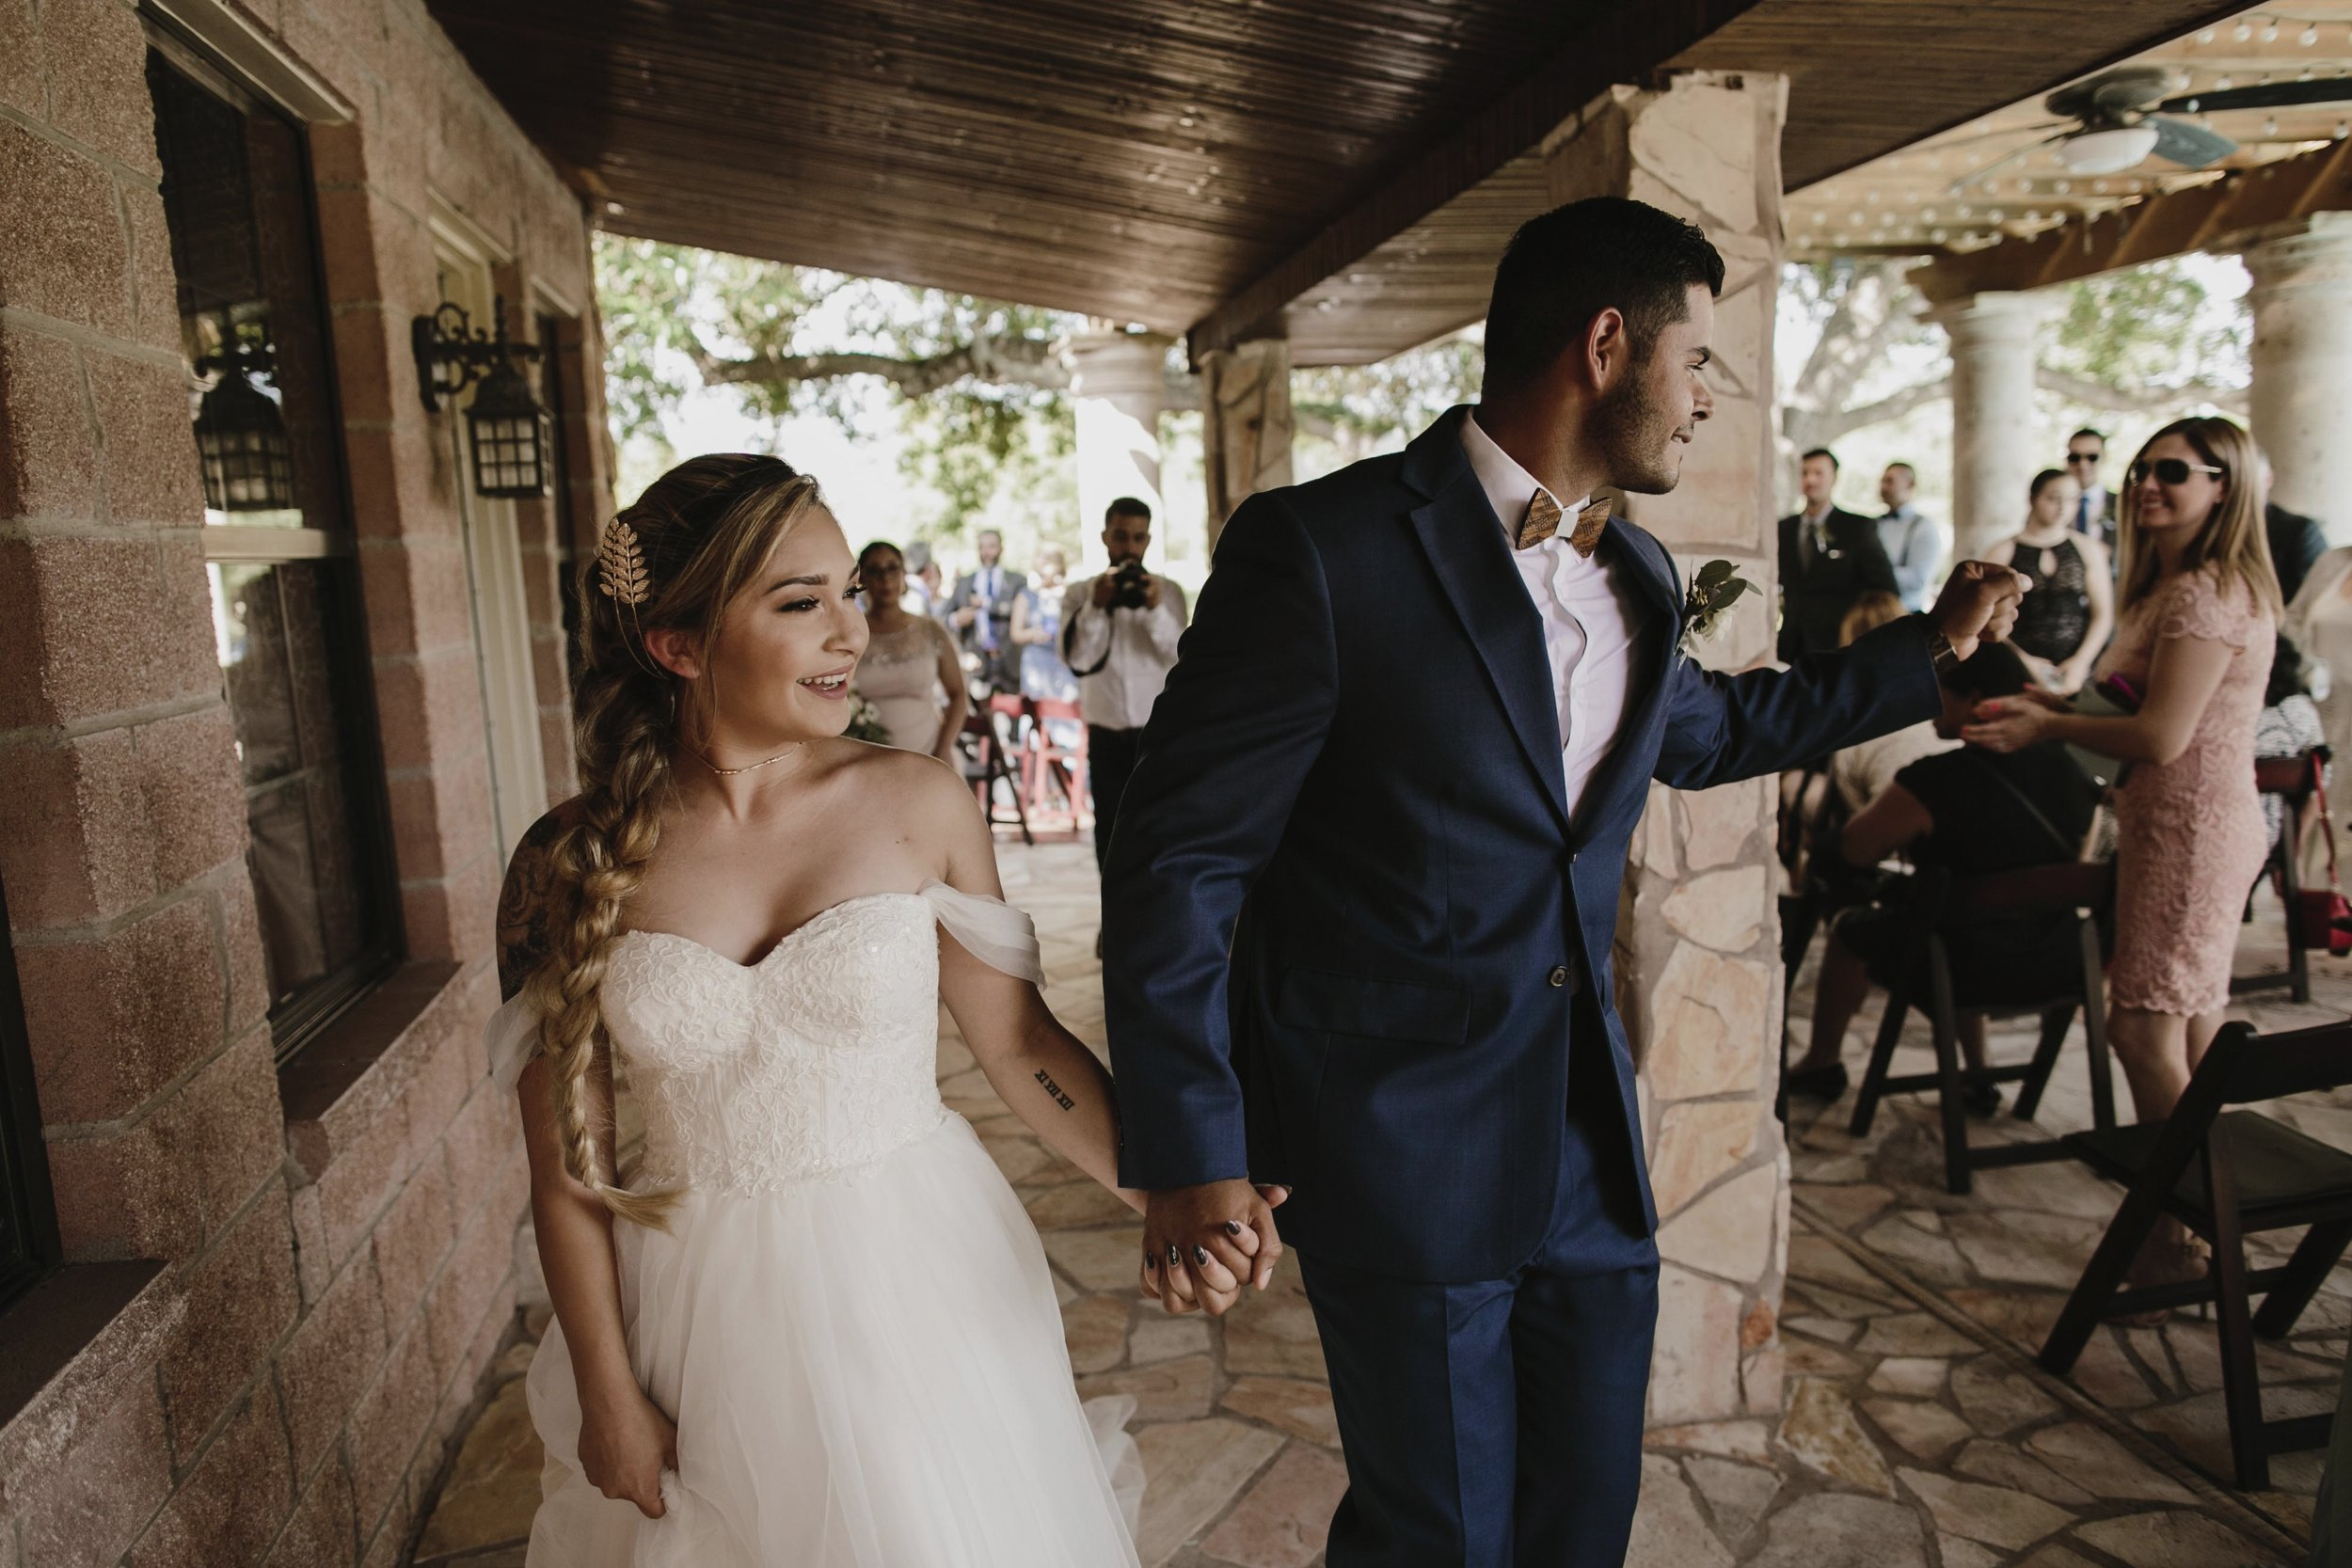 alfonso_flores_destination_wedding_photography_rancho_la_pergola_brownsville_texas40.jpg